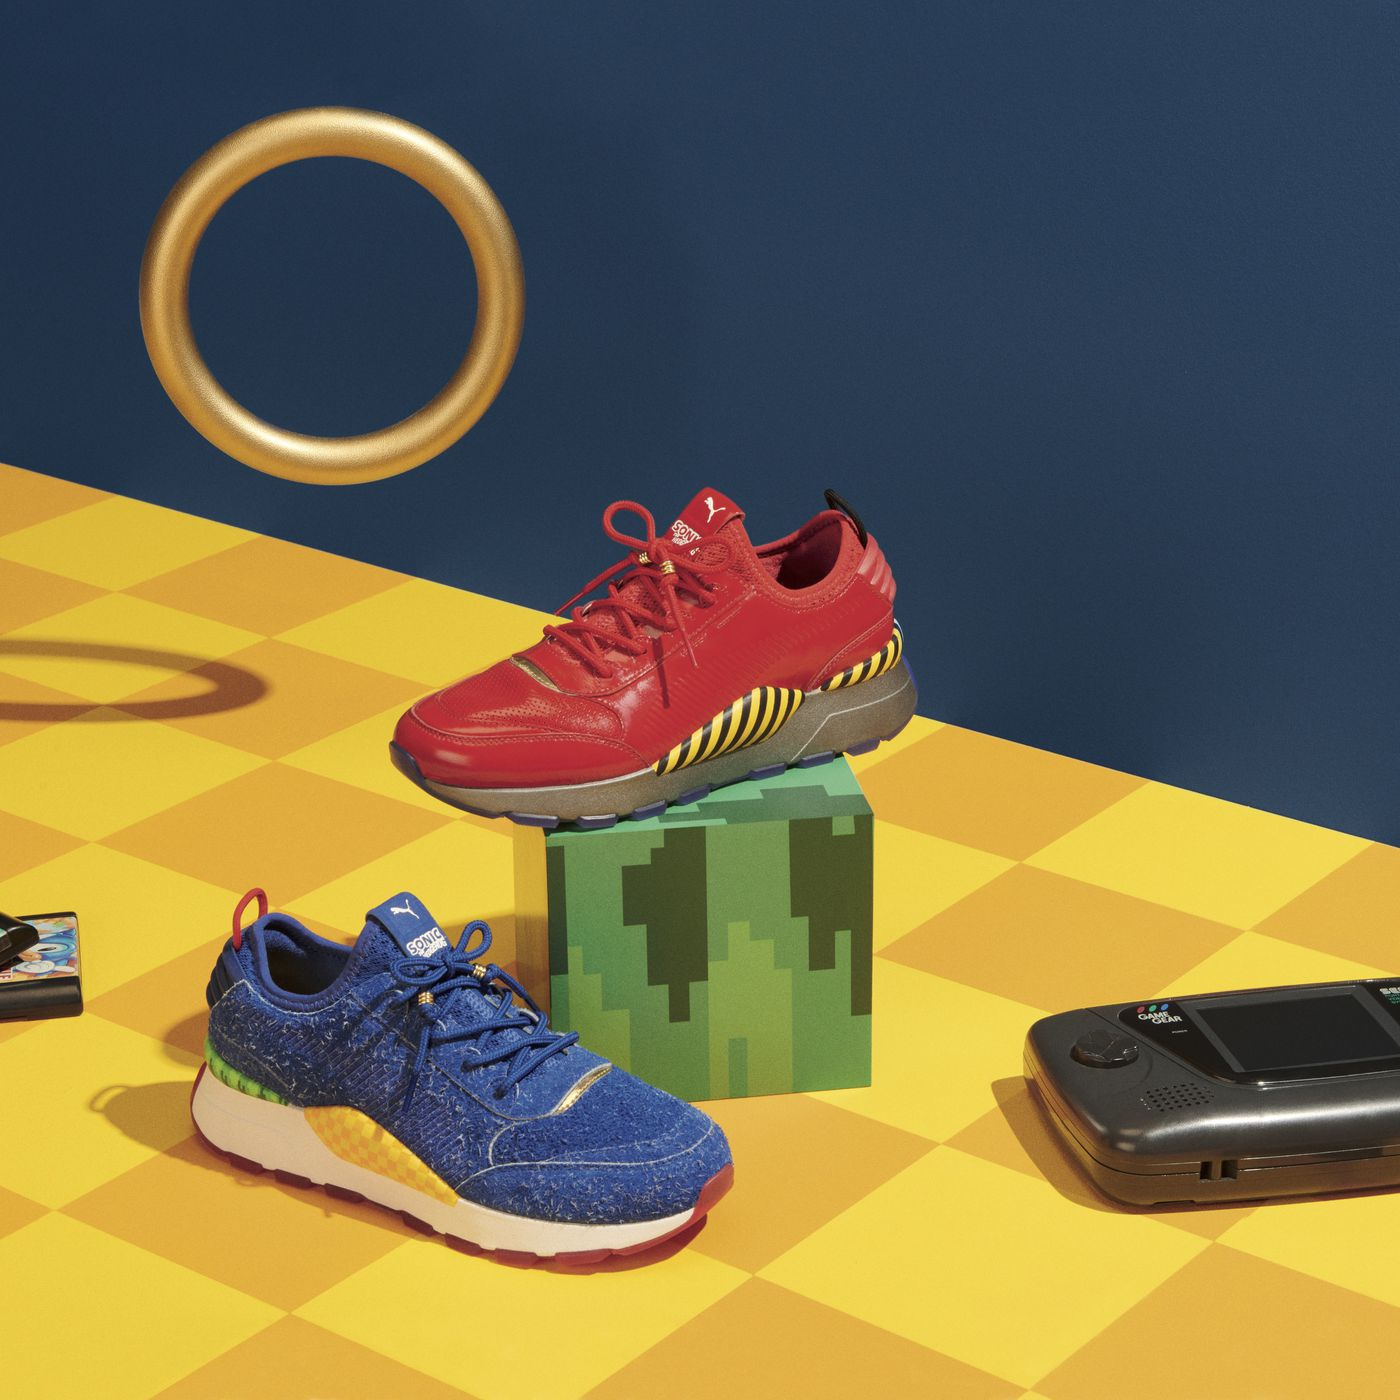 Puma S Sonic The Hedgehog Sneakers On Sale Starting June 5 Polygon